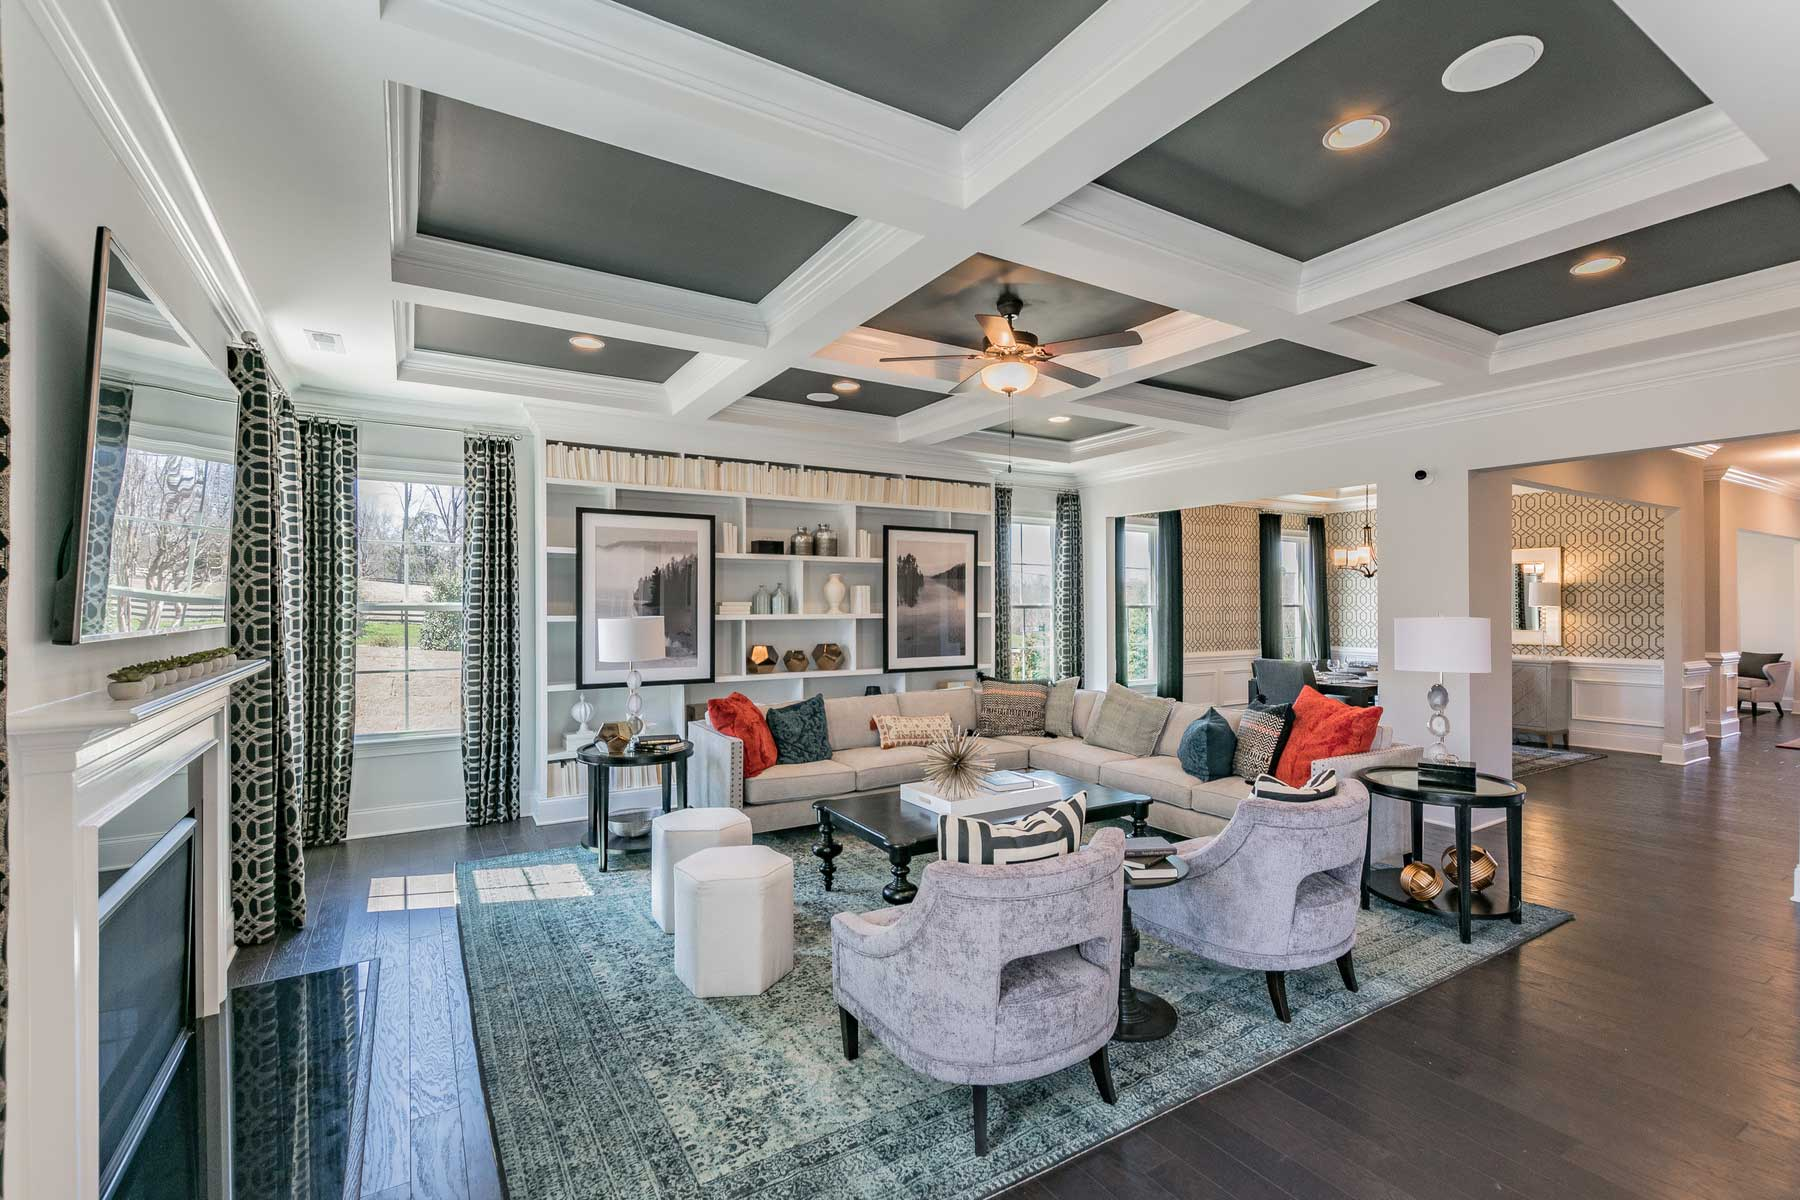 Harlow's Crossing Family Room